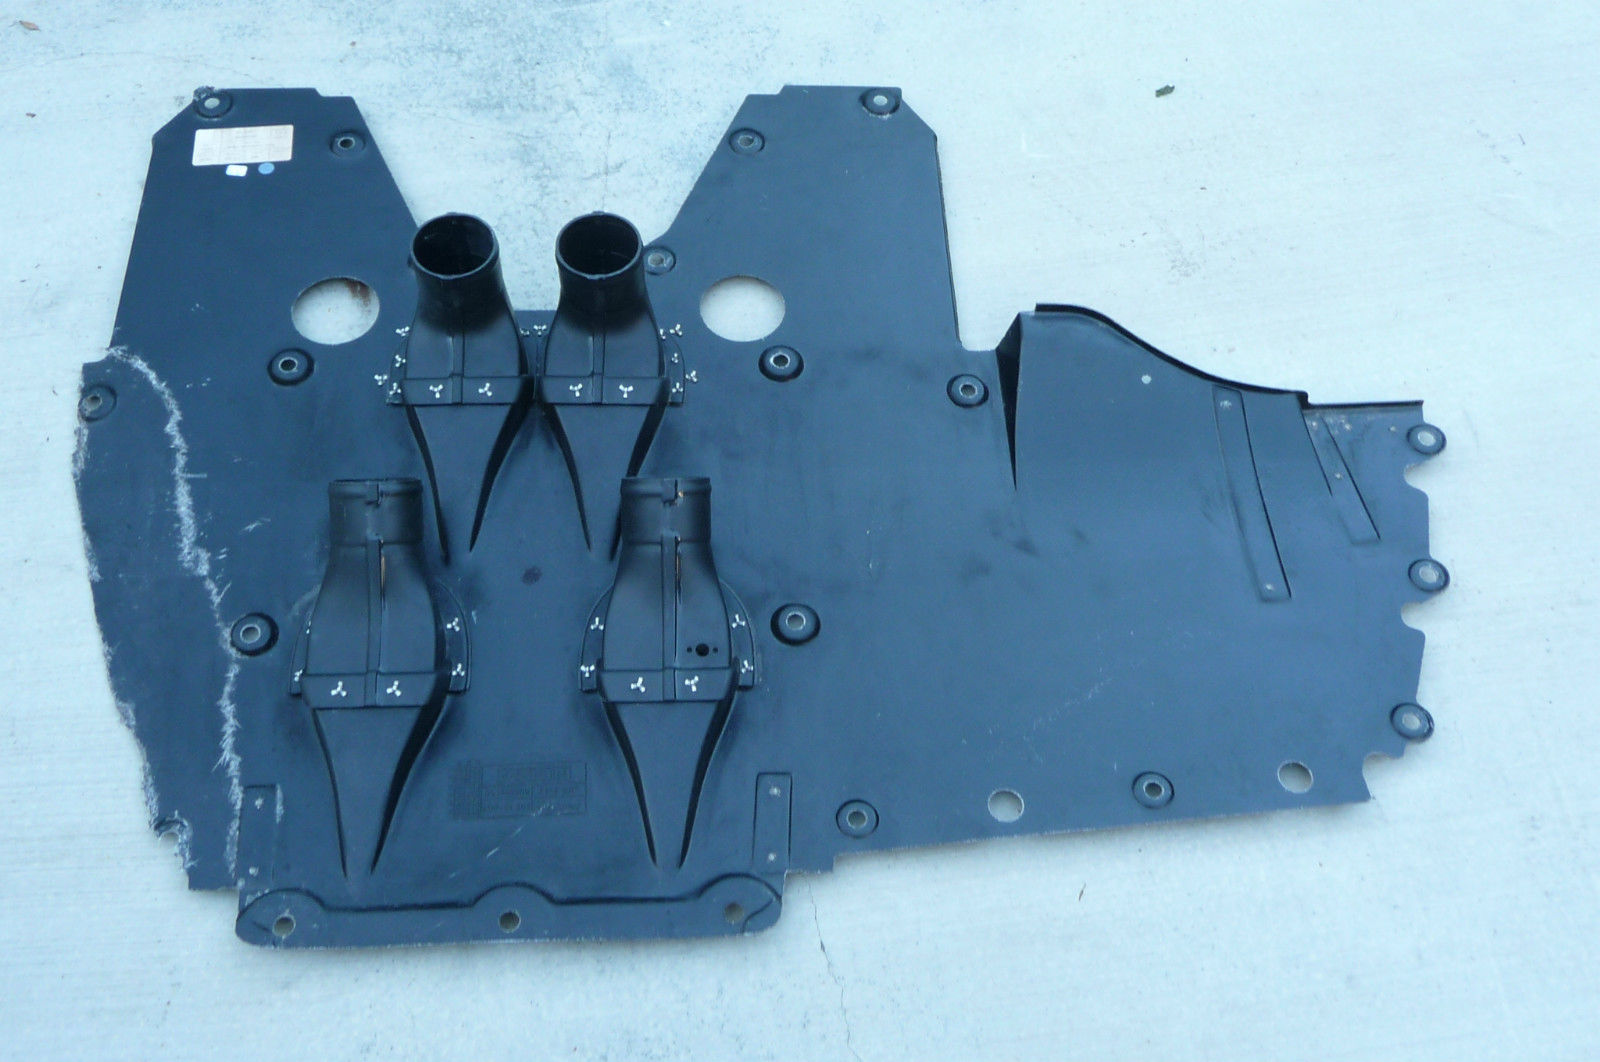 Ferrari 458 Front Center underbody shield 83799900, 84154500, Fragment  - Used Auto Parts Store | LA Global Parts